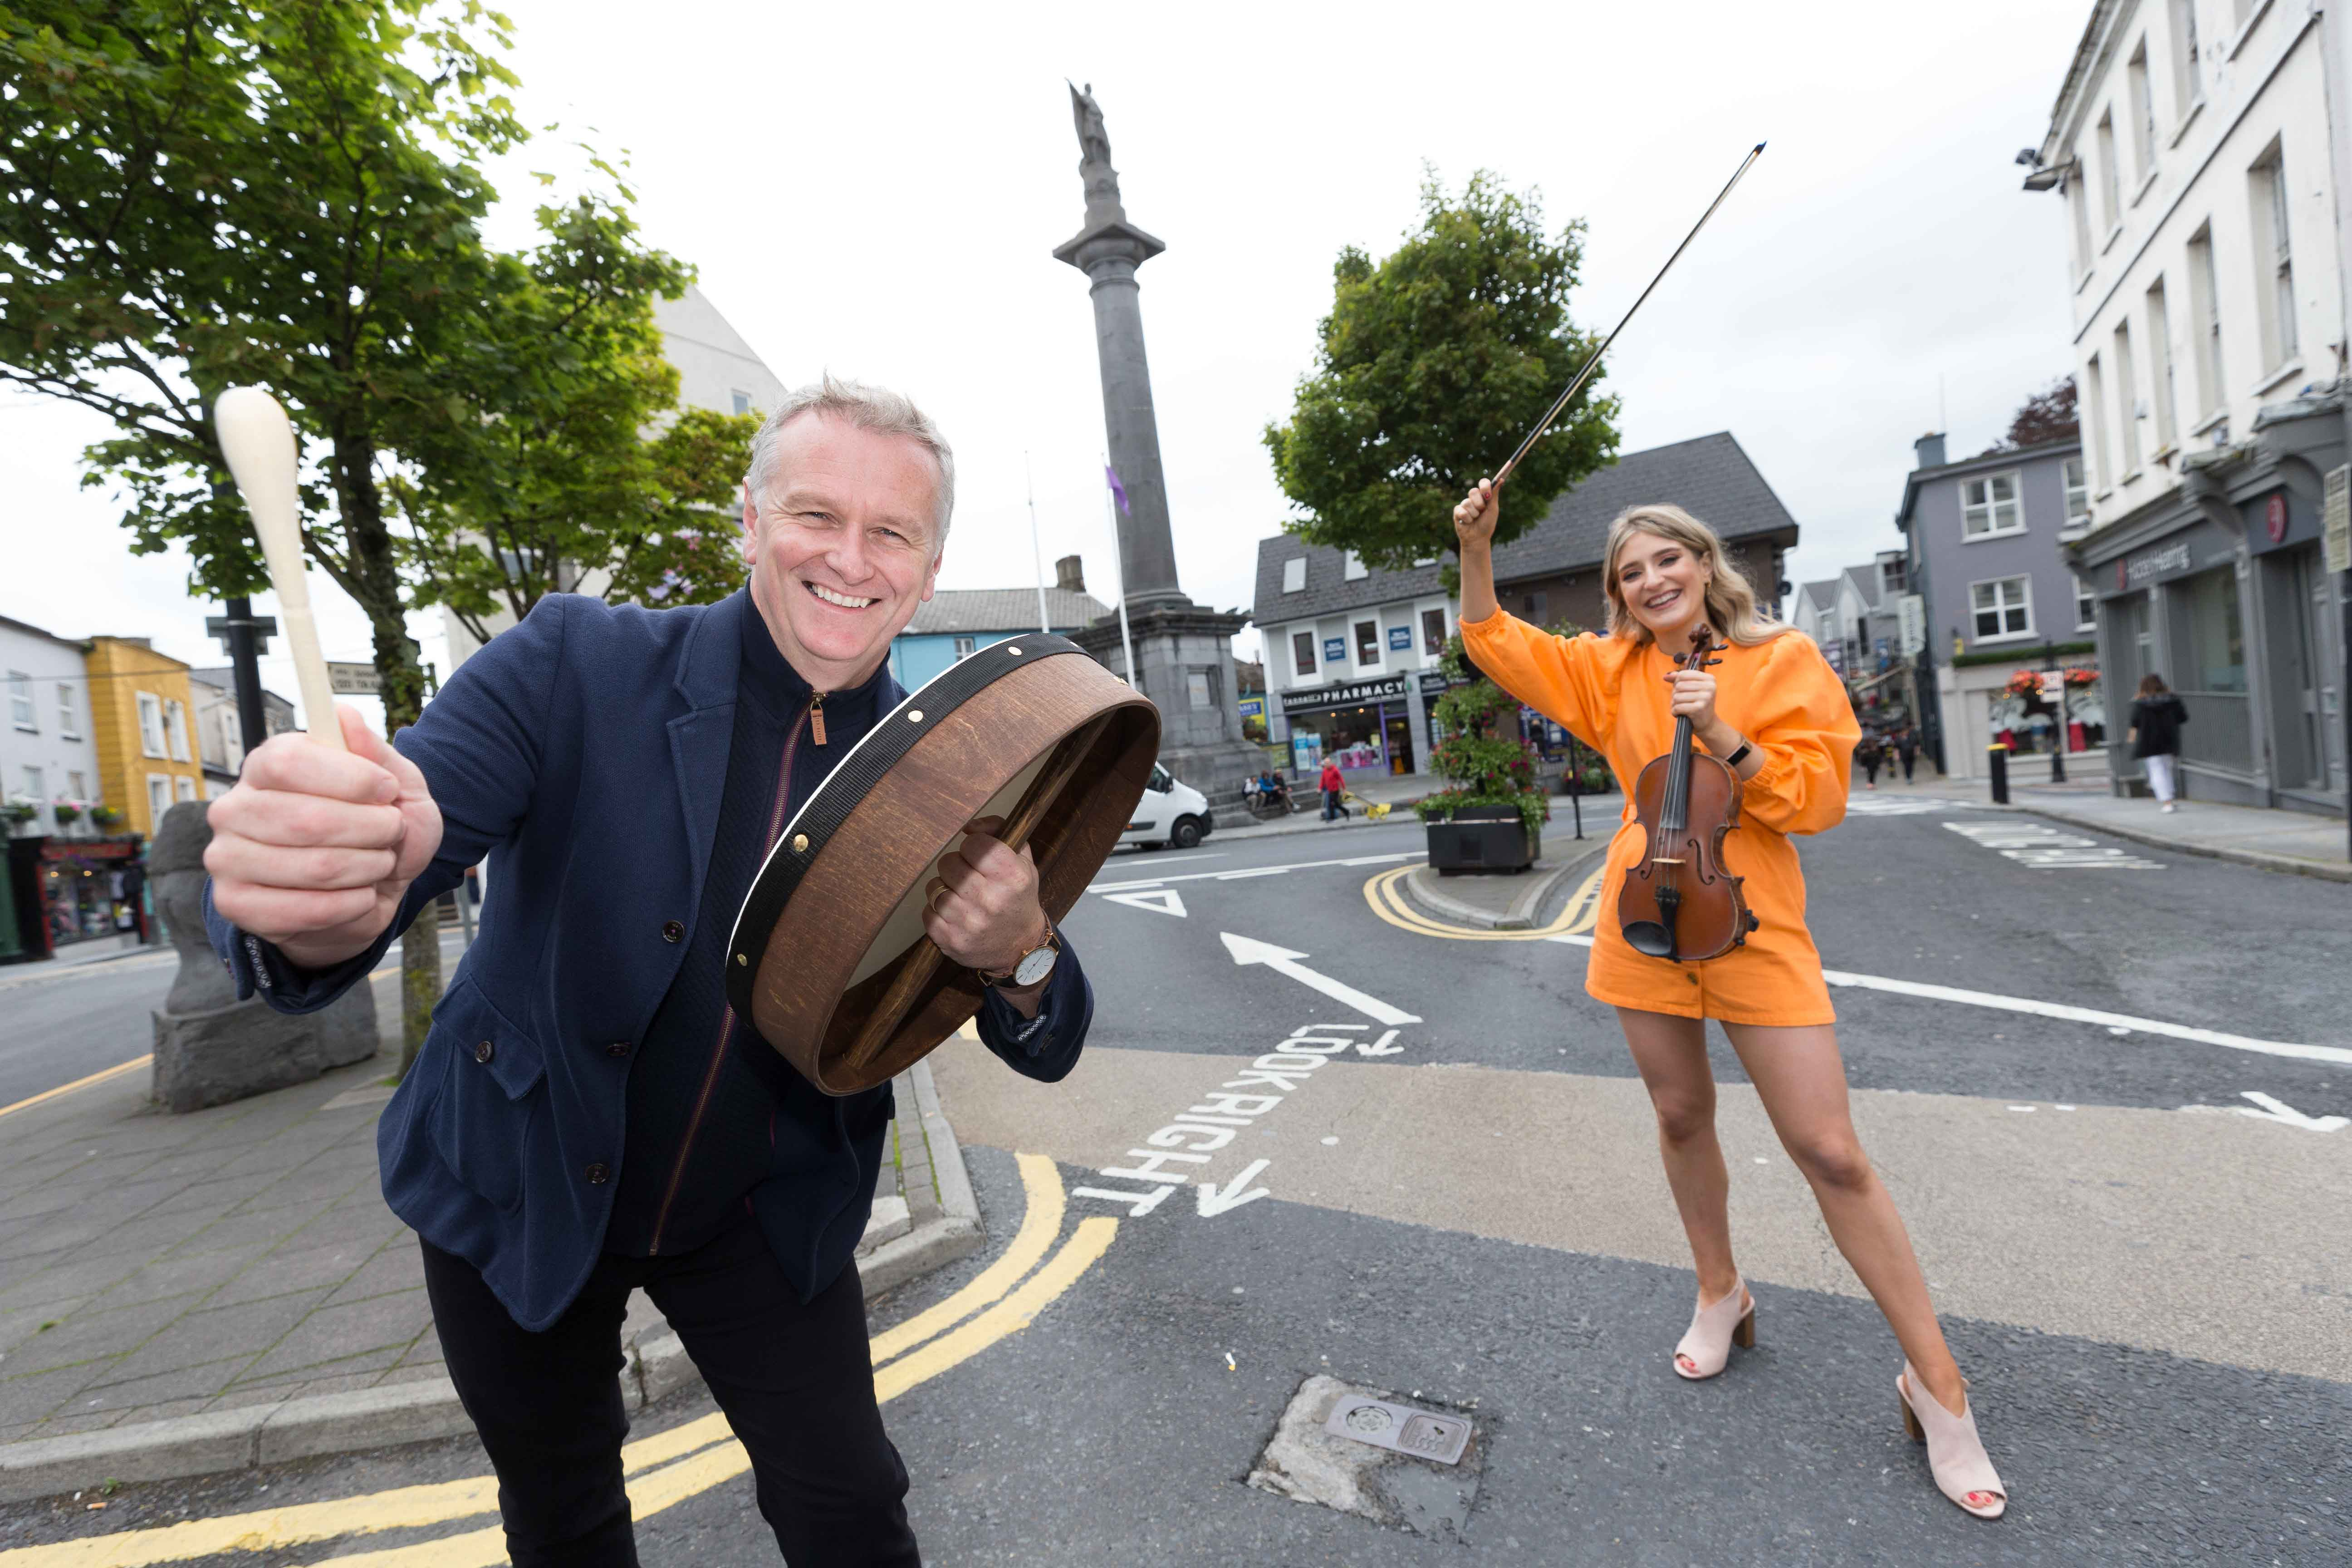 Fleadh2020- new series on TG4